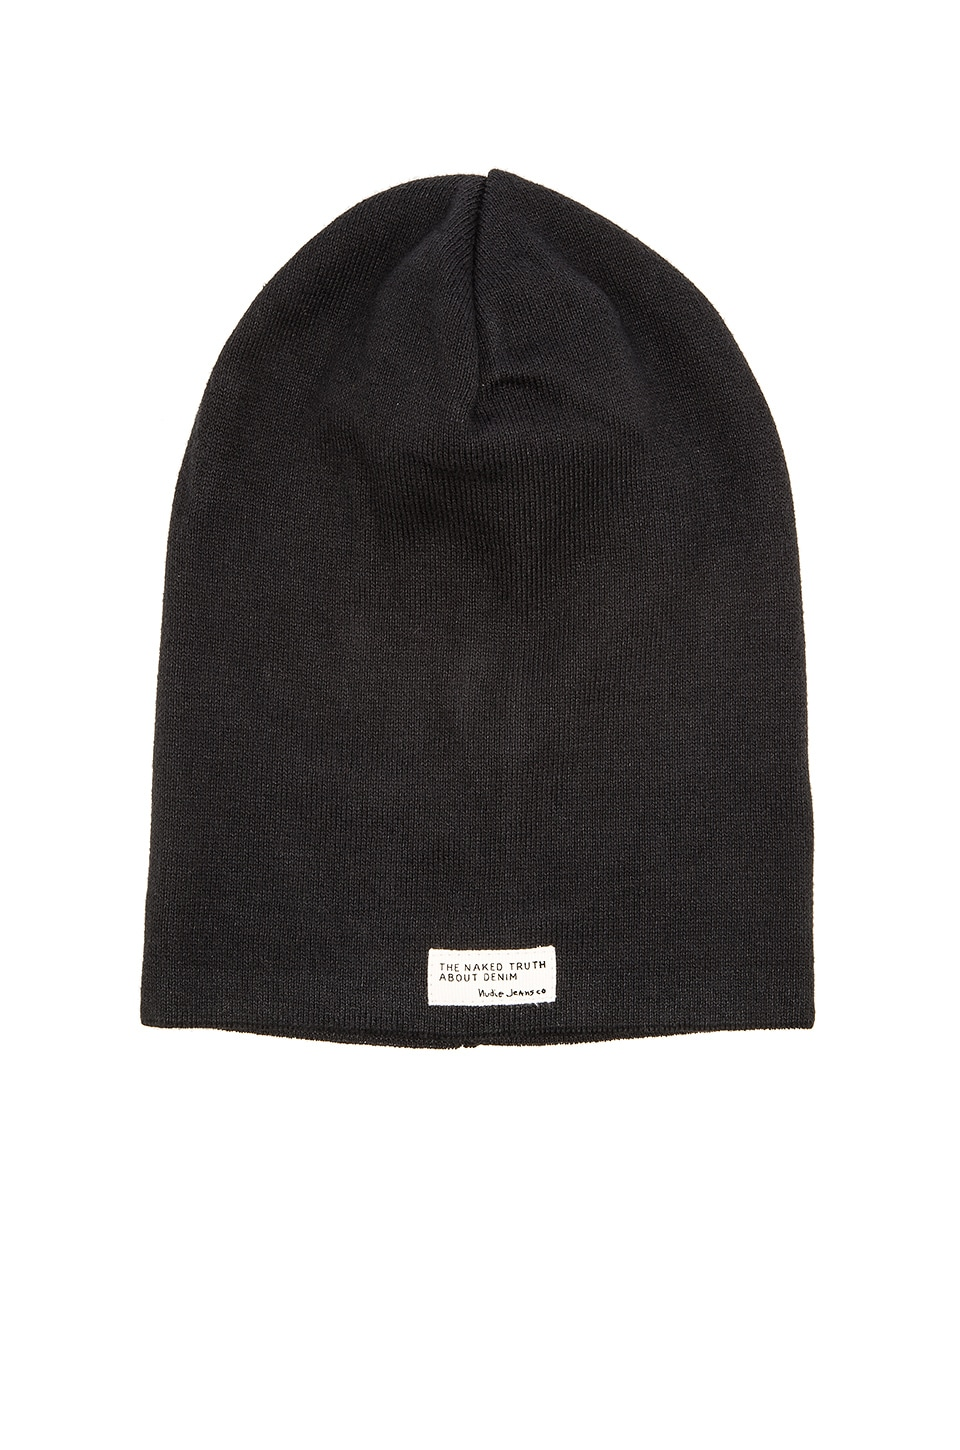 Nudie Jeans Hannesson Beanie in Black